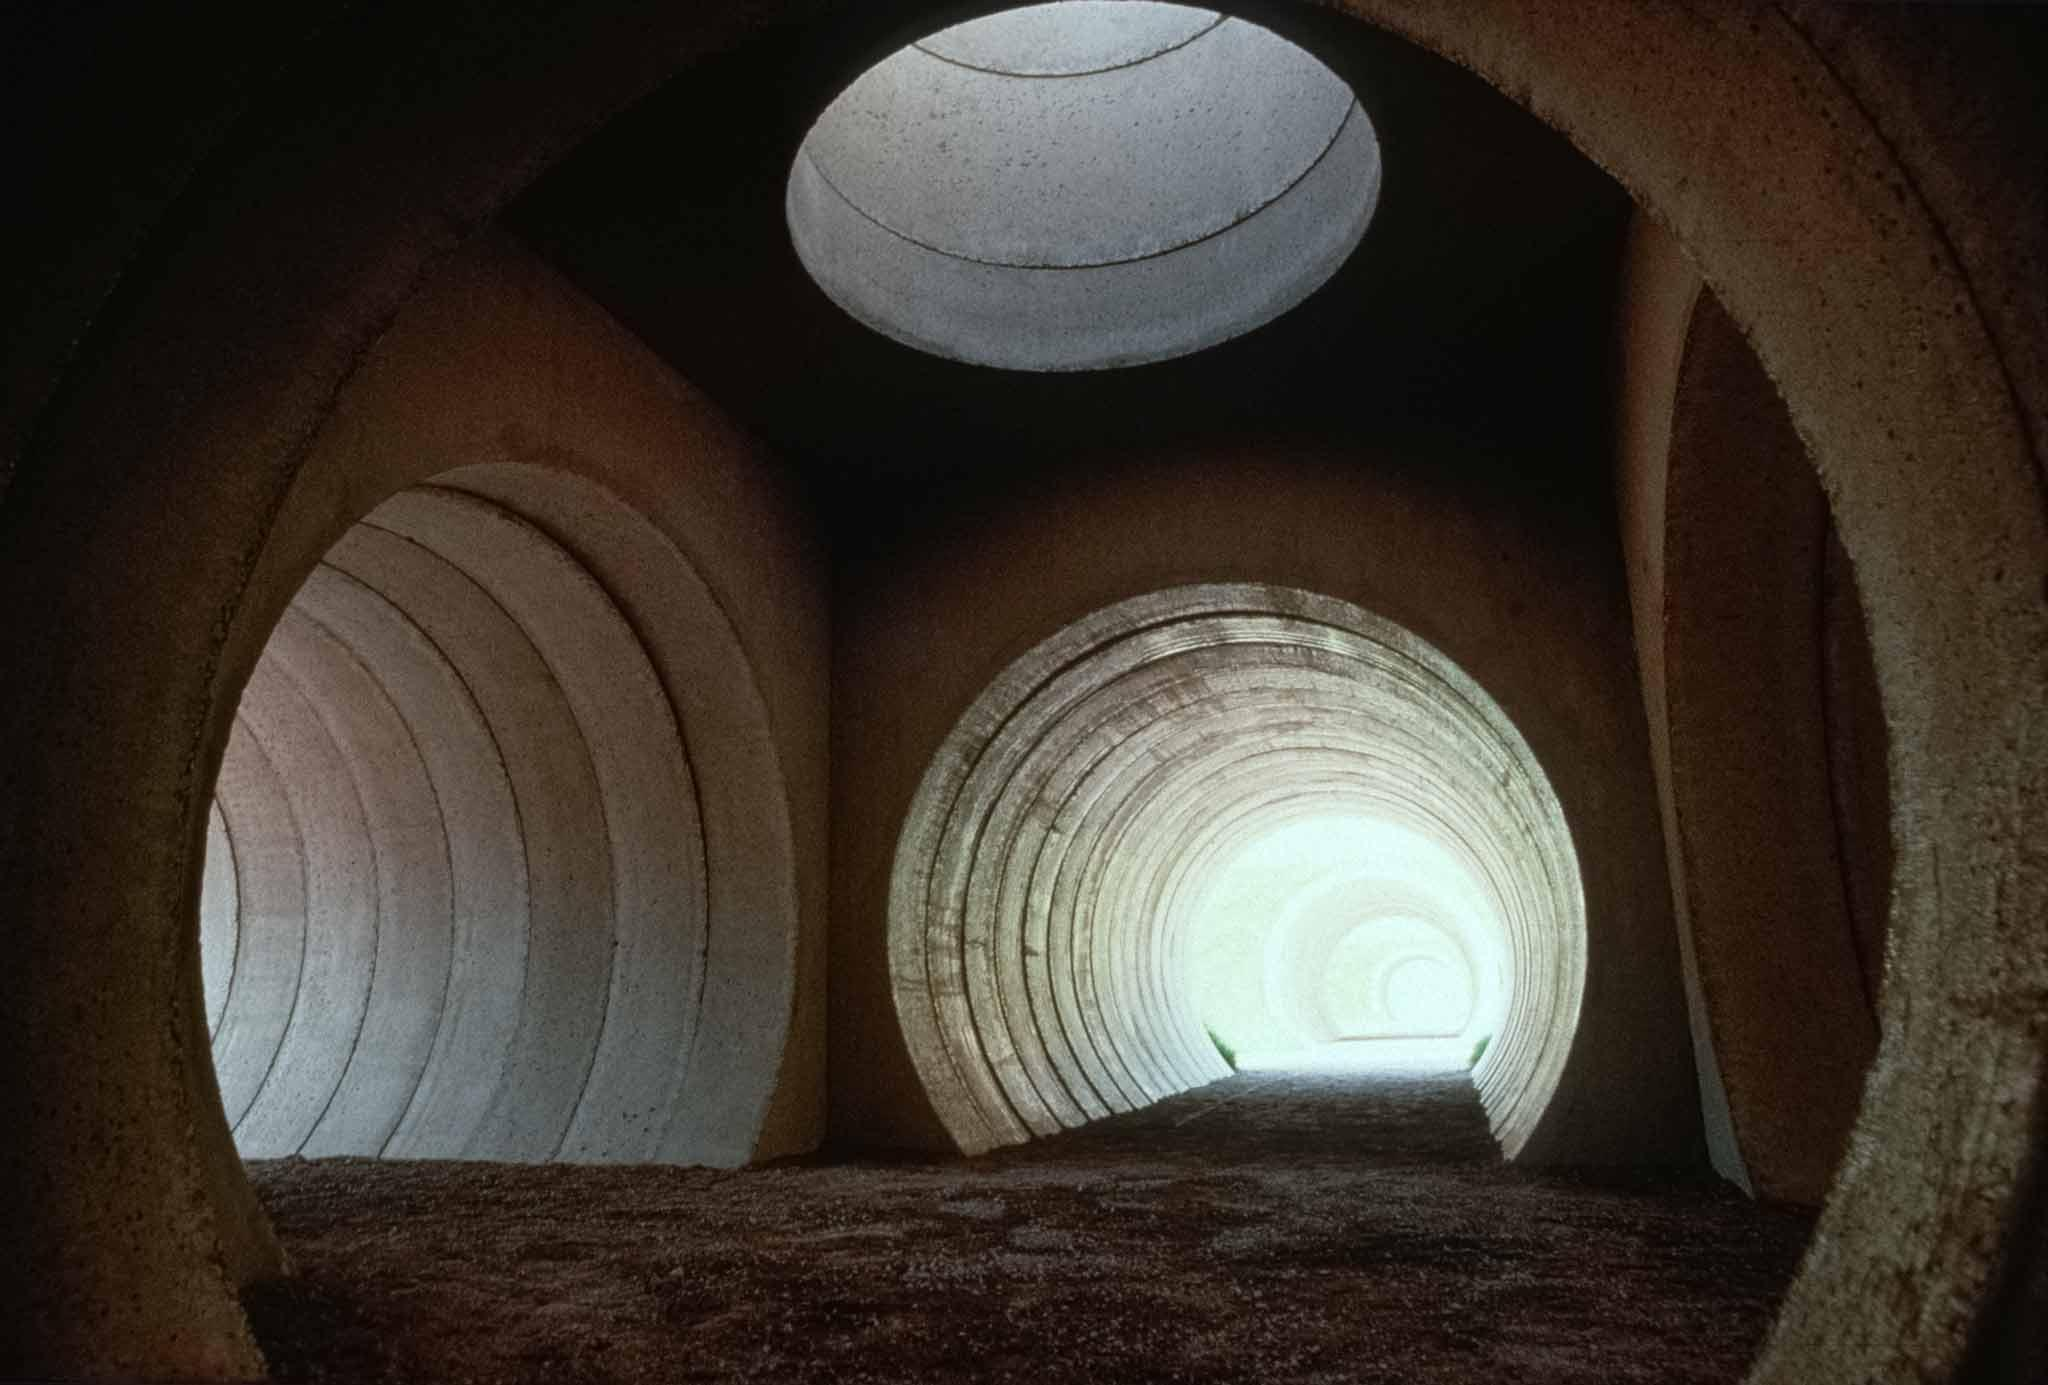 Interior view of converging circular concrete tunnels with light coming through them